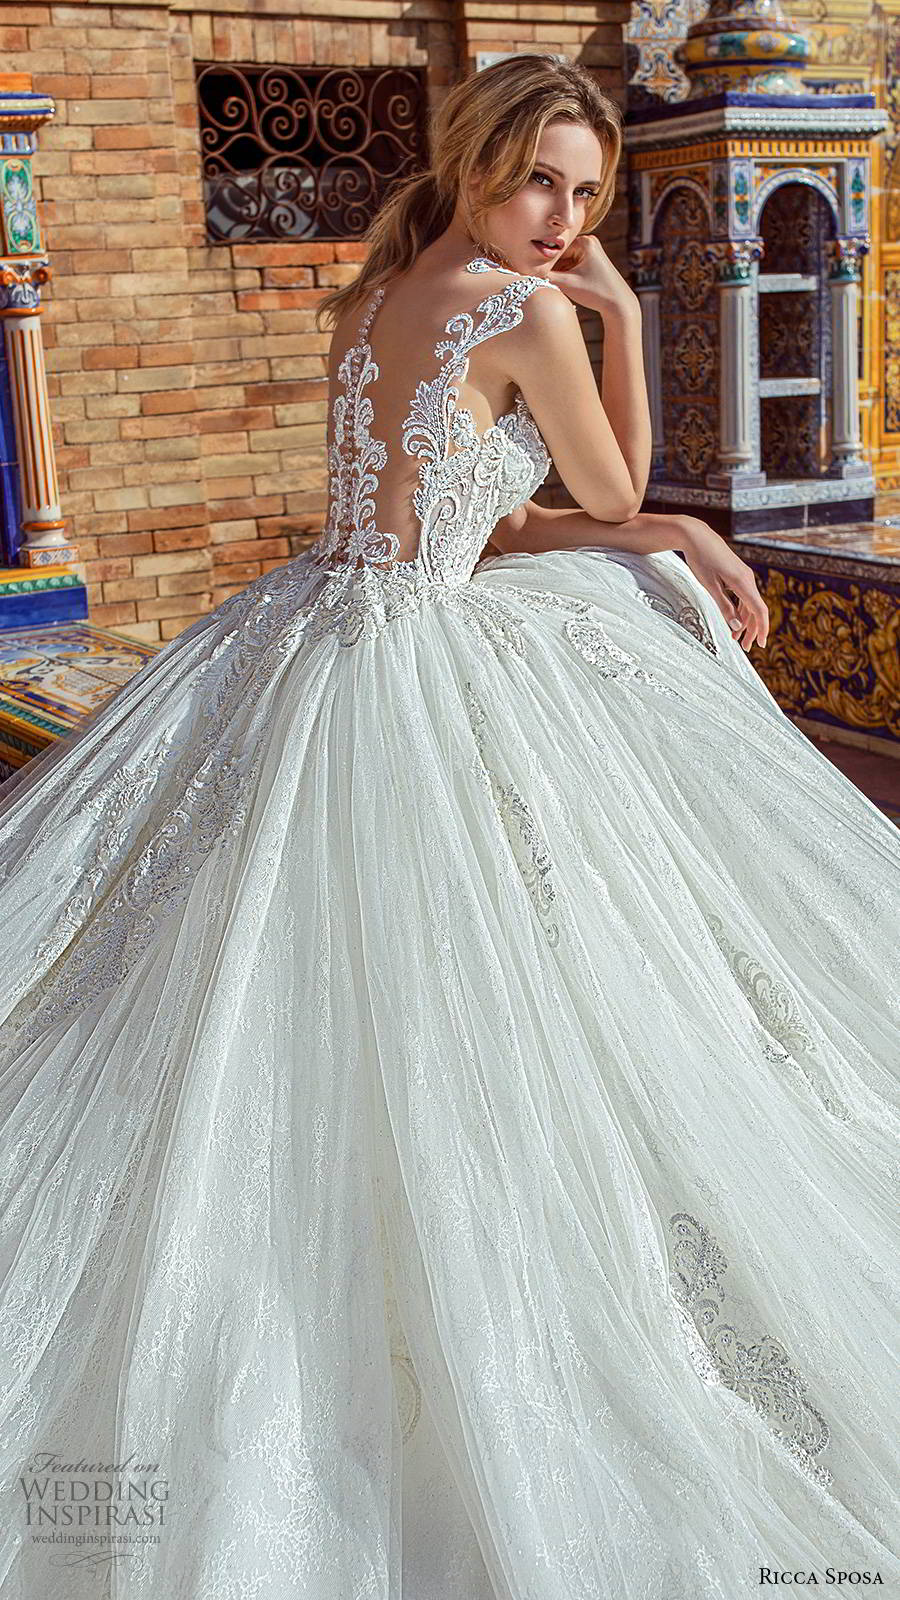 ricca sposa 2019 bridal illusion cap sleeves jewel neckline embellished bodice romantic princess a line ball gown wedding dress illusion back cathedral train (3) zbv